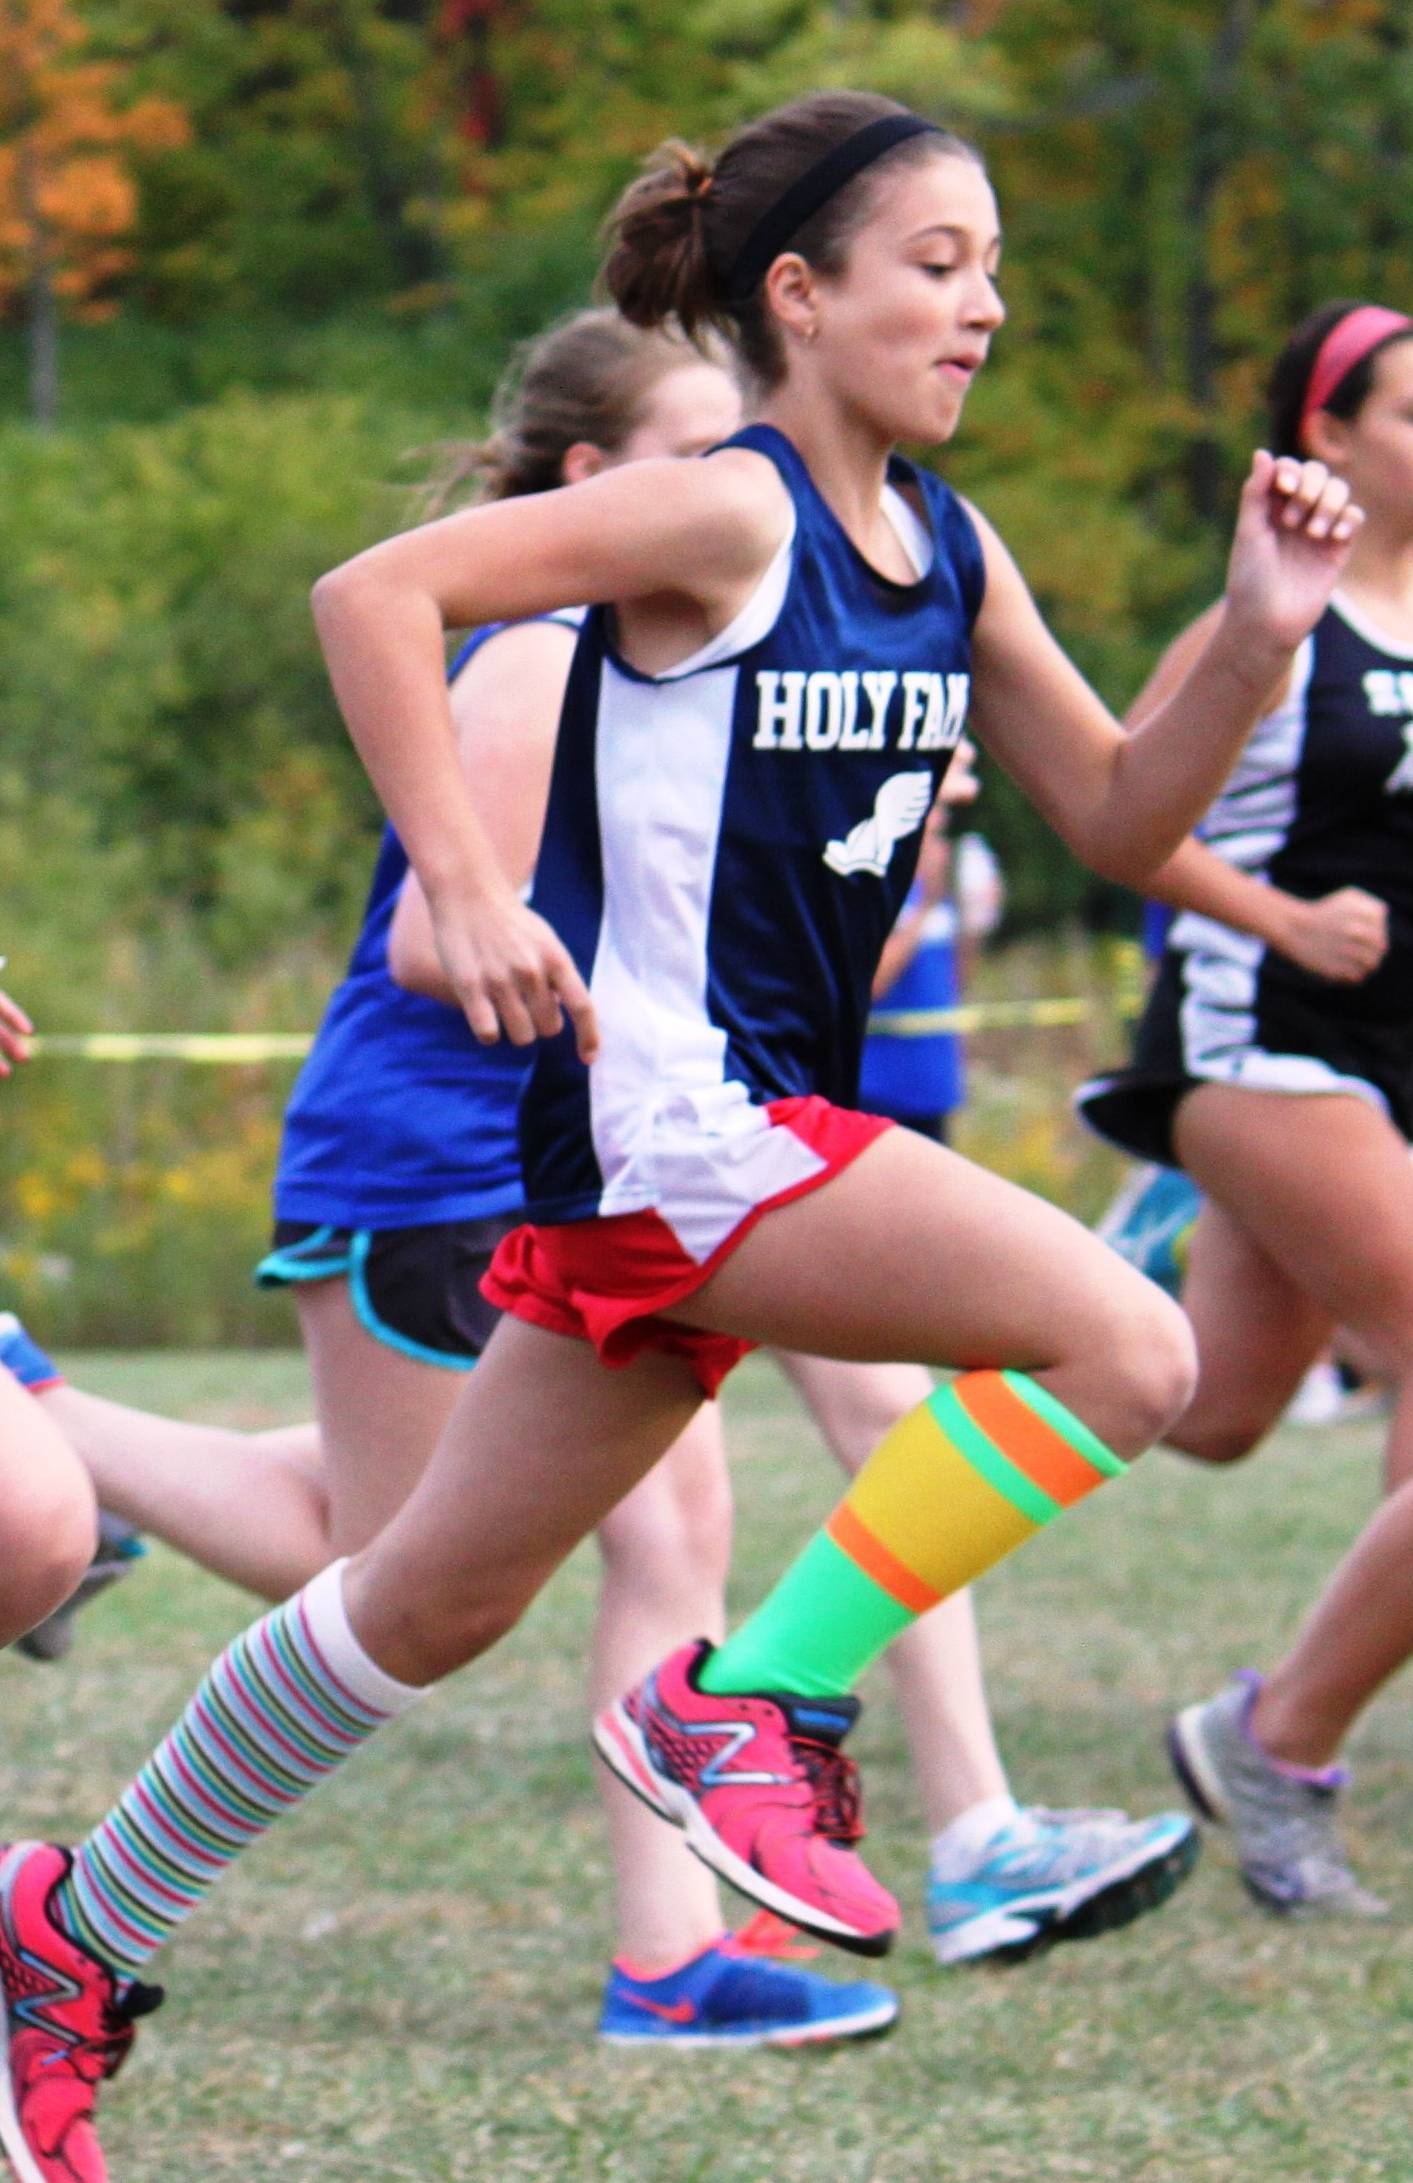 Holy Family Academy athlete Olivia heading to state competition.